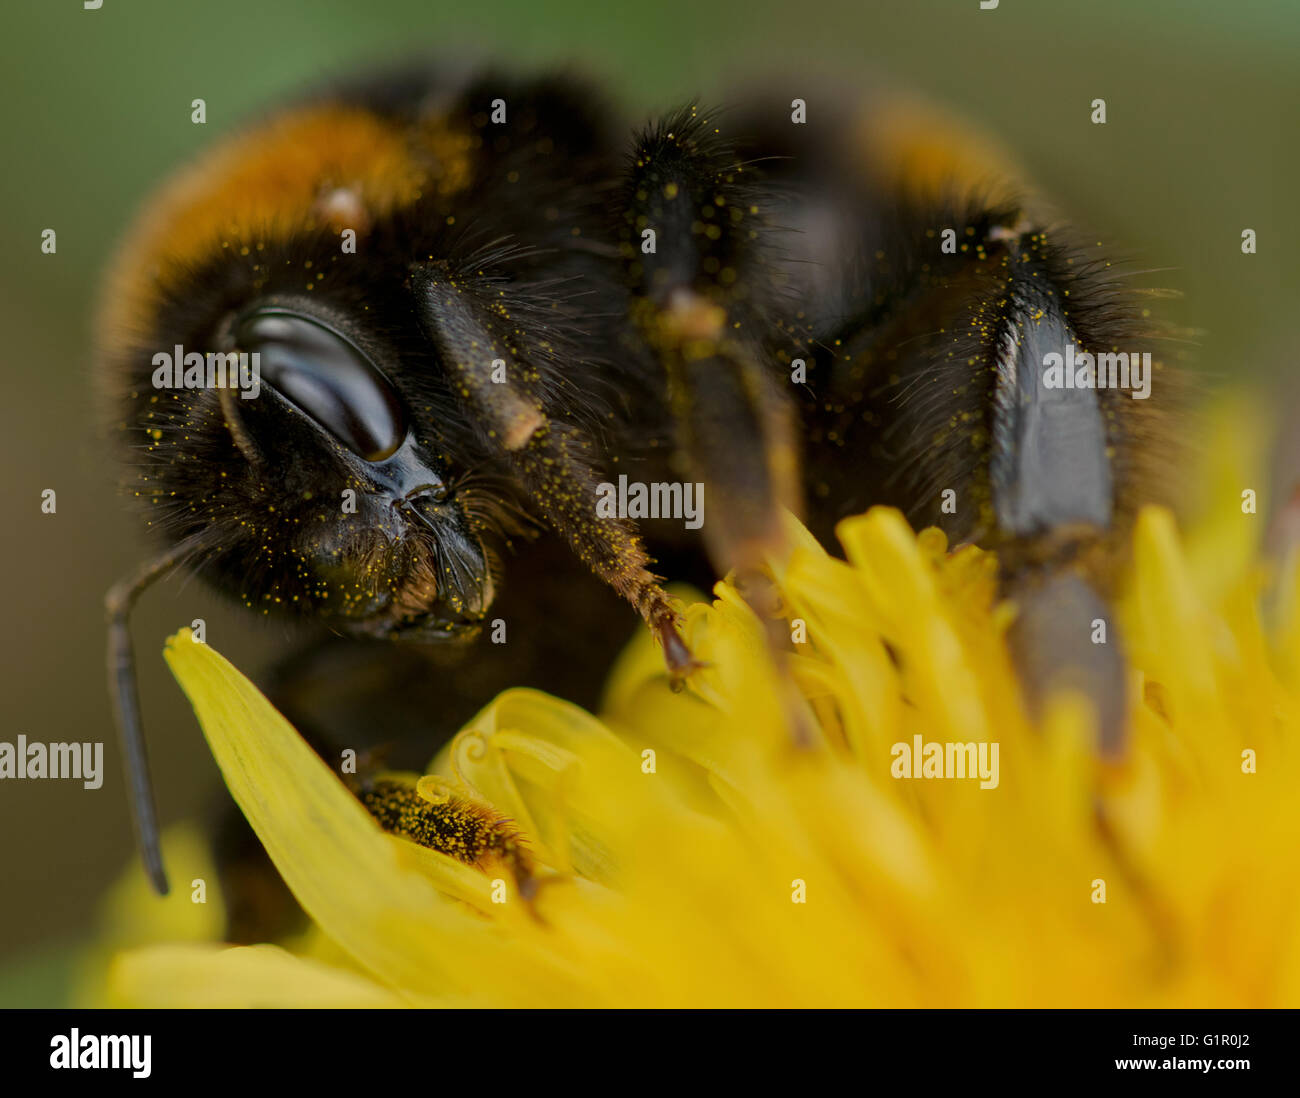 A bee covered with pollen on a wild flower. - Stock Image